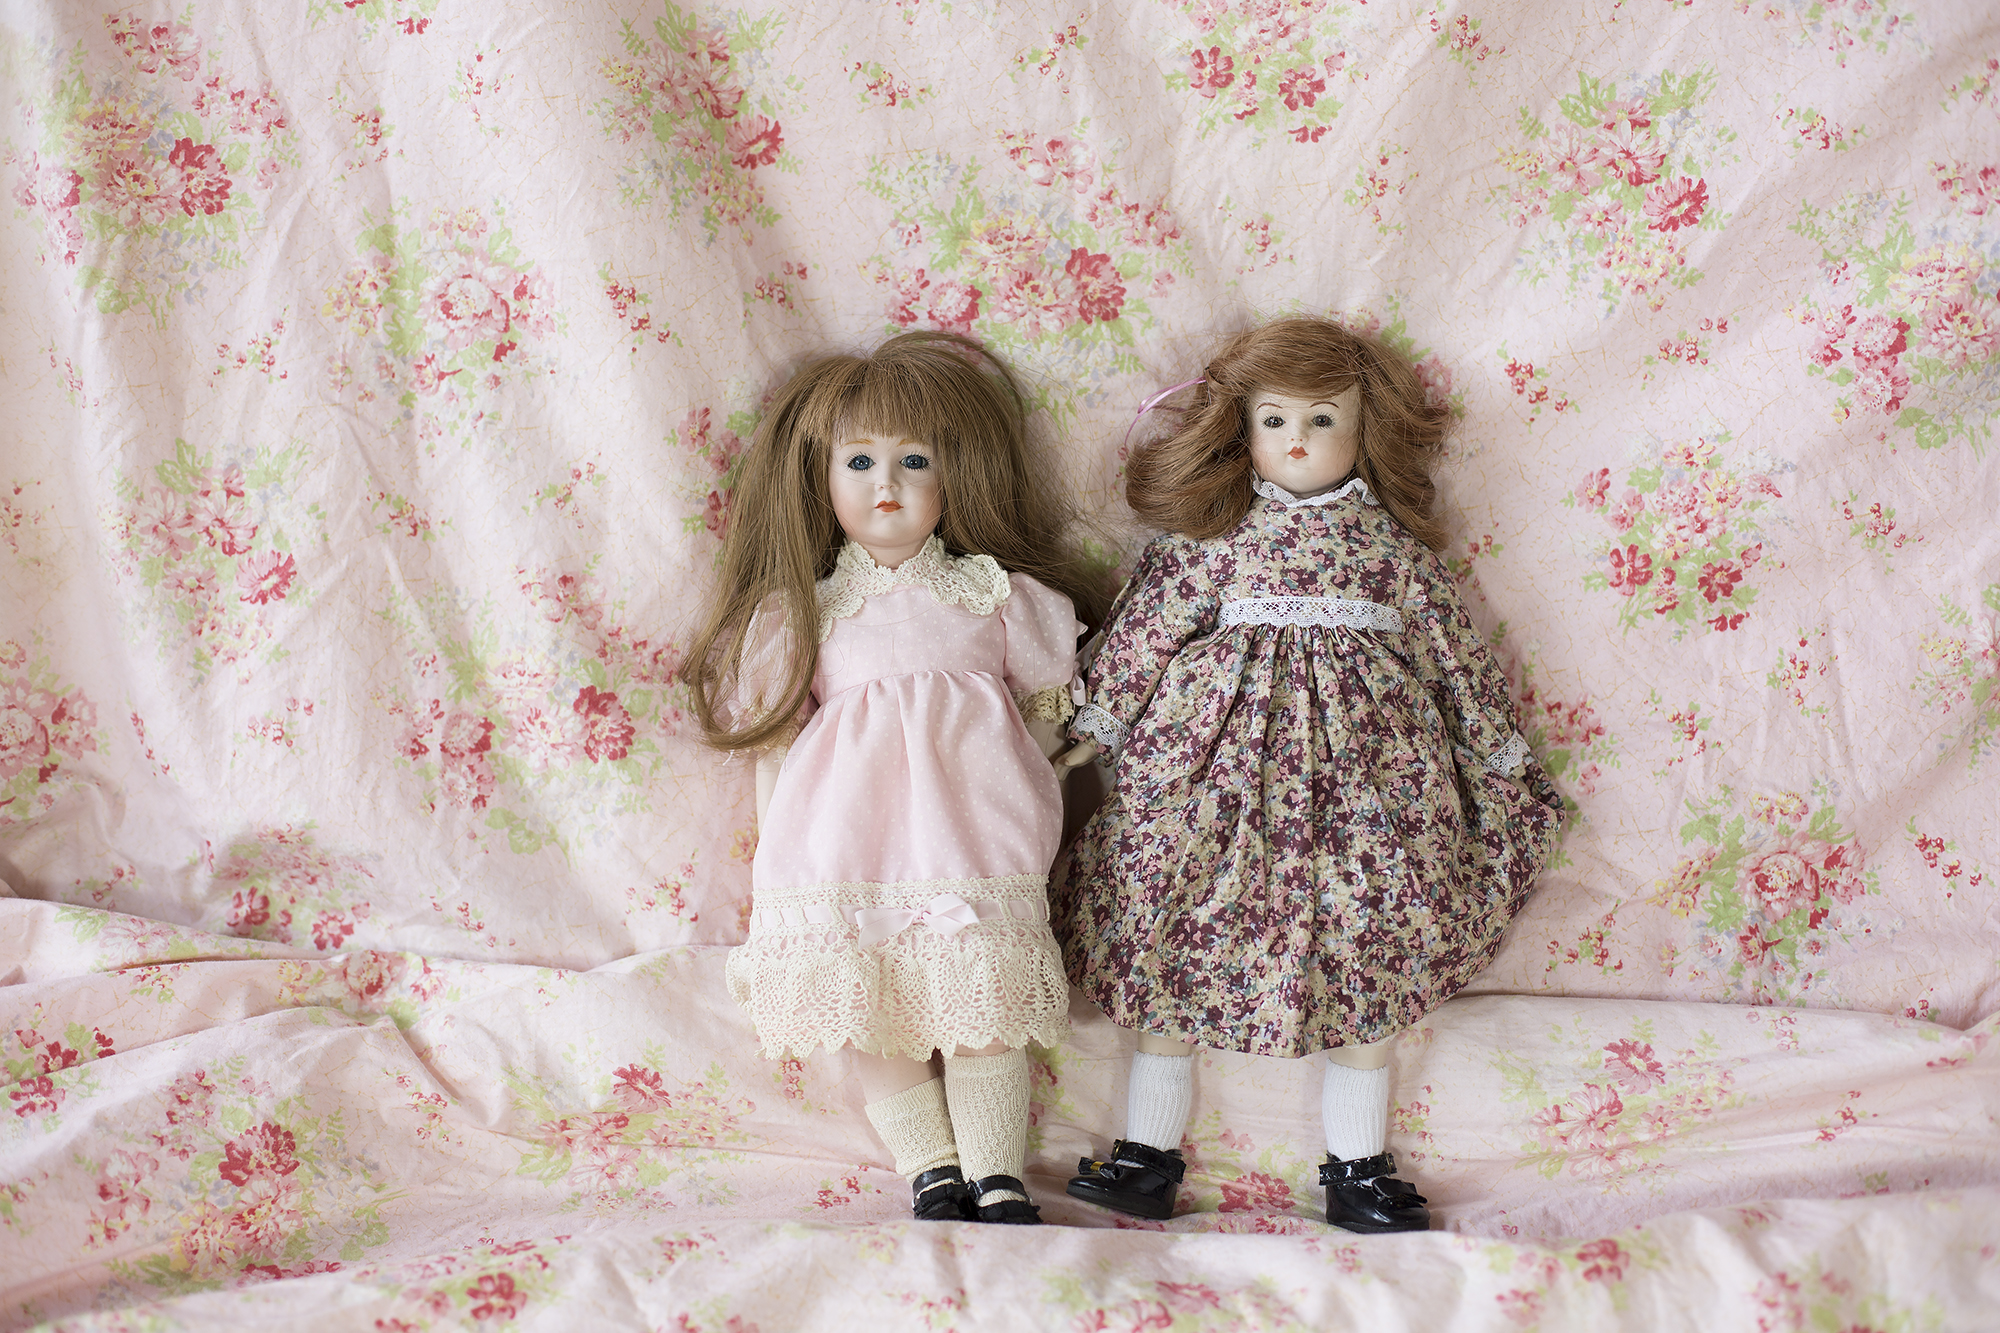 Reproduction dolls. The doll on left a Simon and Halbig with K R (stands for Kammer and Reinhardt) which took over S&H in 1920 and was given to Judith by her mother in law. She is lovingly dressed in pink and has a sweet face. The doll on right in floral was made in 1986.